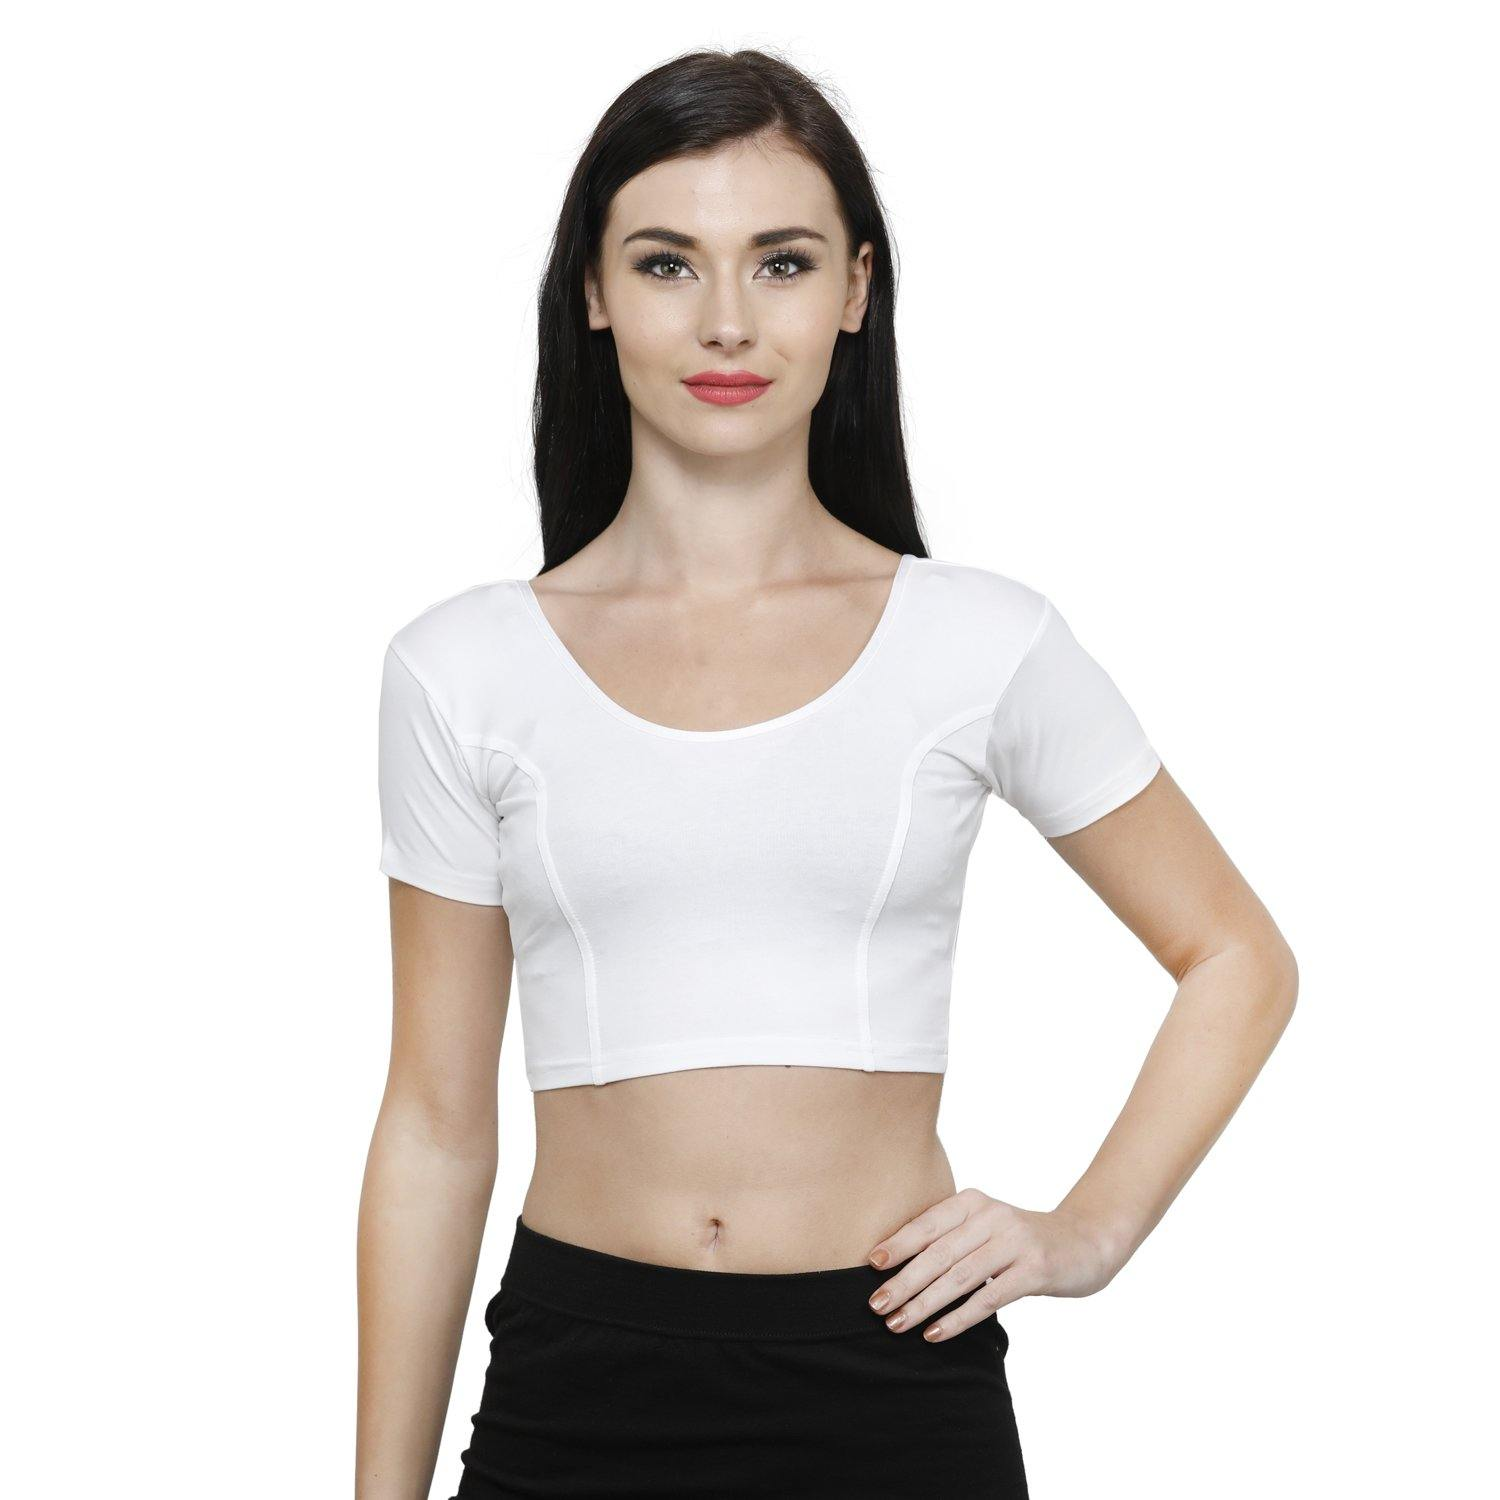 Vami Women's Cotton Stretchable Readymade Blouses - White